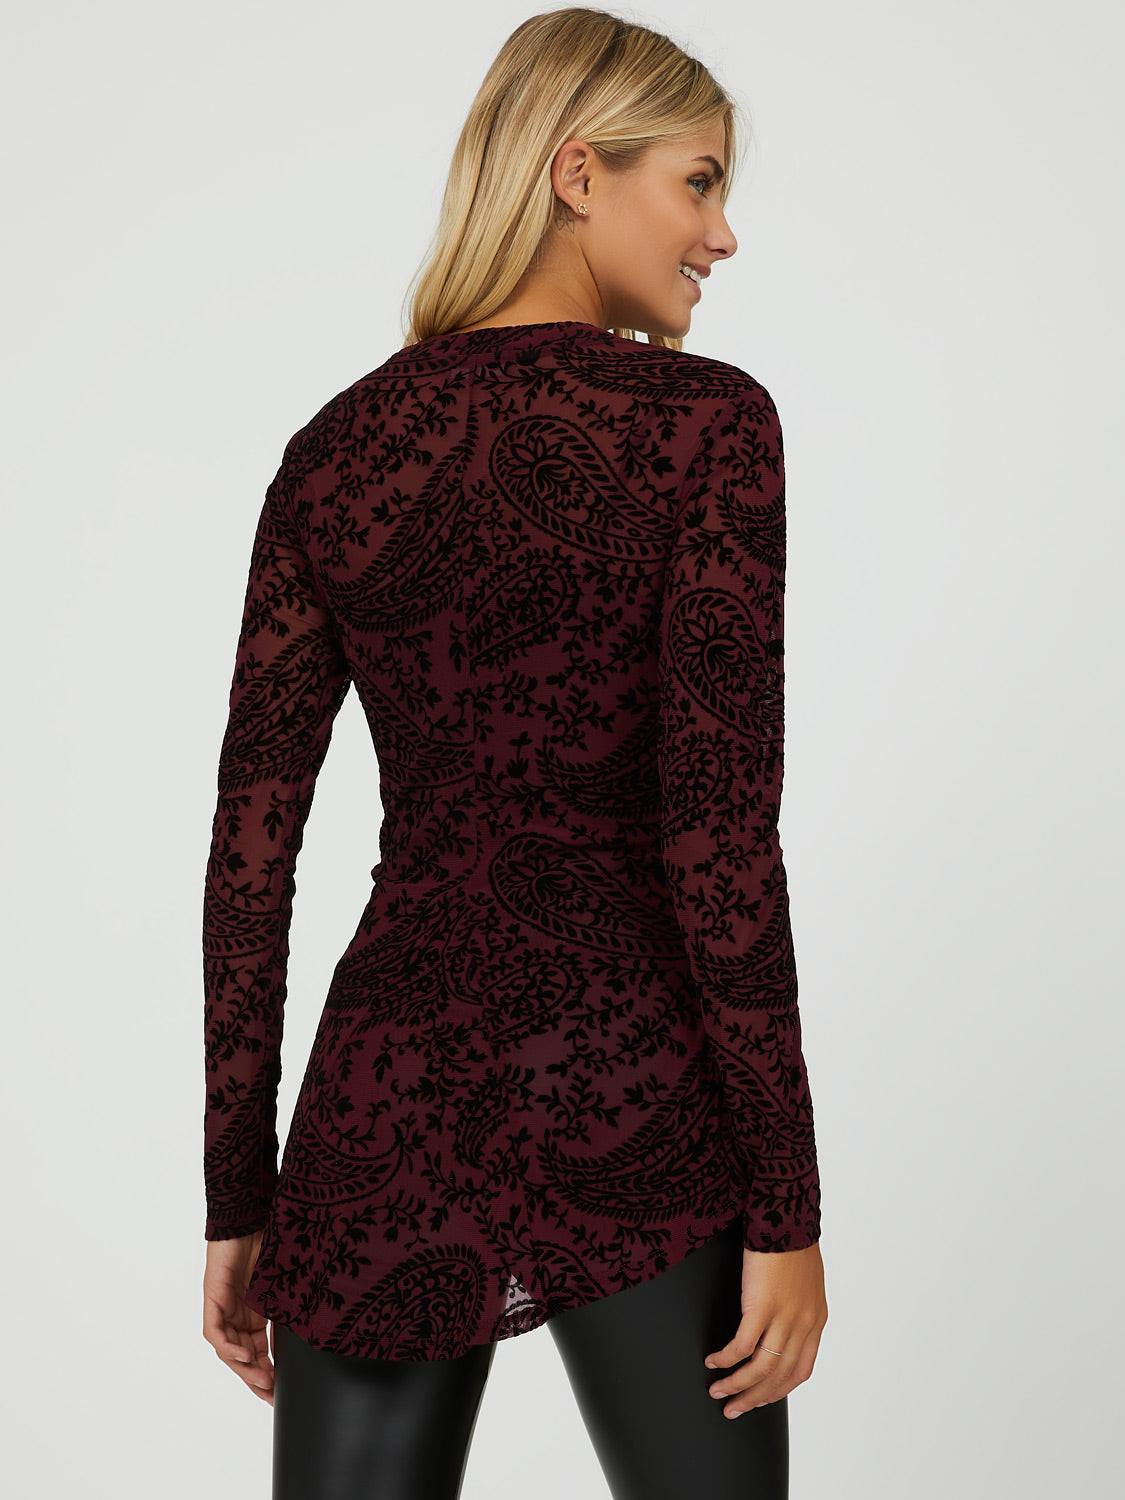 Paisley High Neck Fit & Flare Top